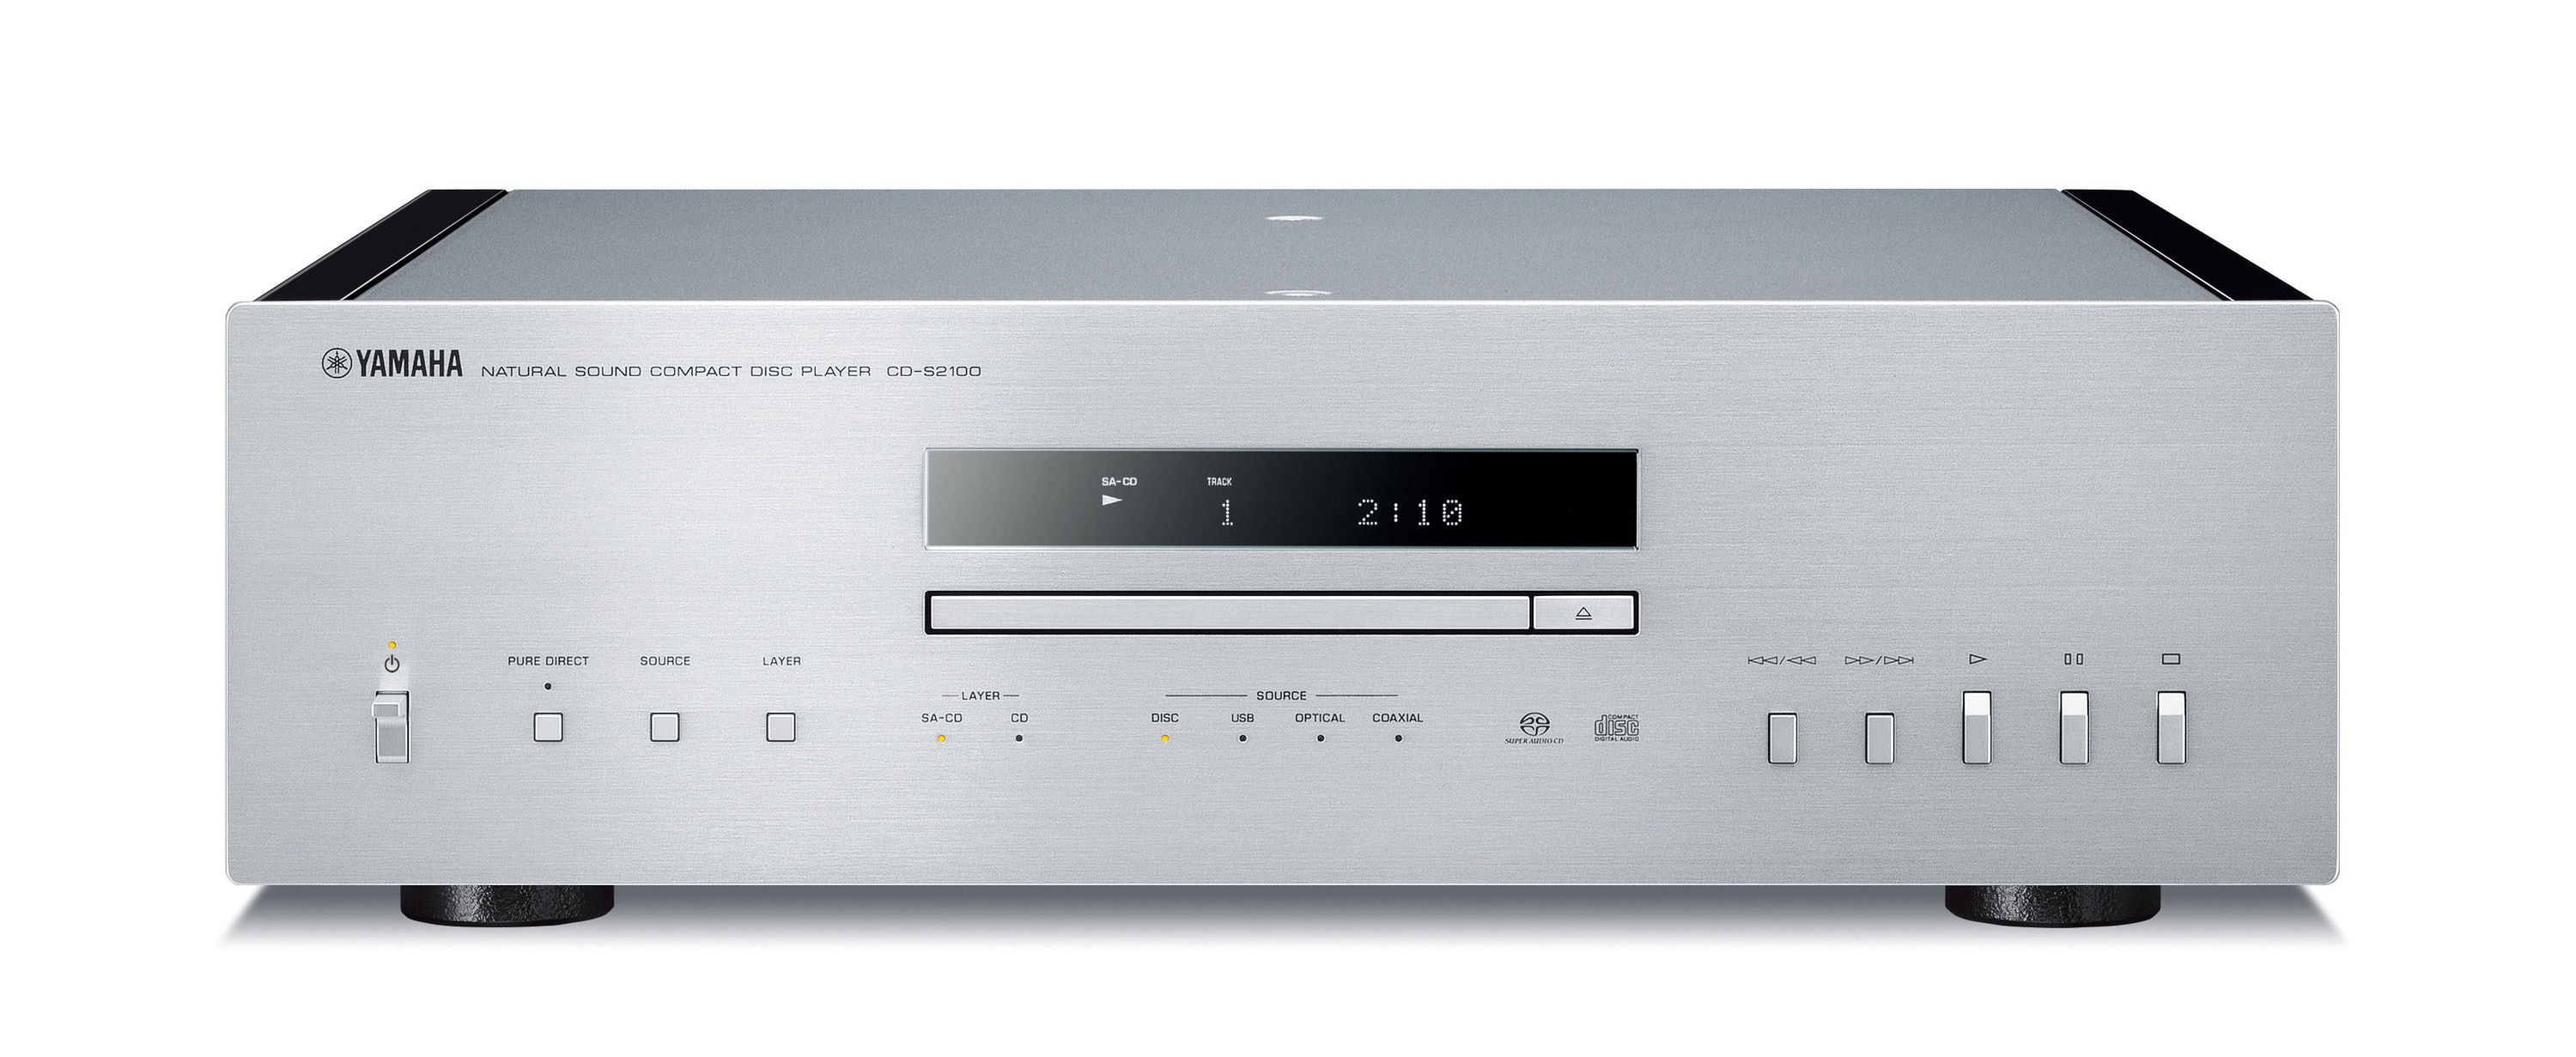 Yamaha CD-S2100 High-End CD-Player USB Audio DAC Vibrationskontrolle für 2.299,00 Euro